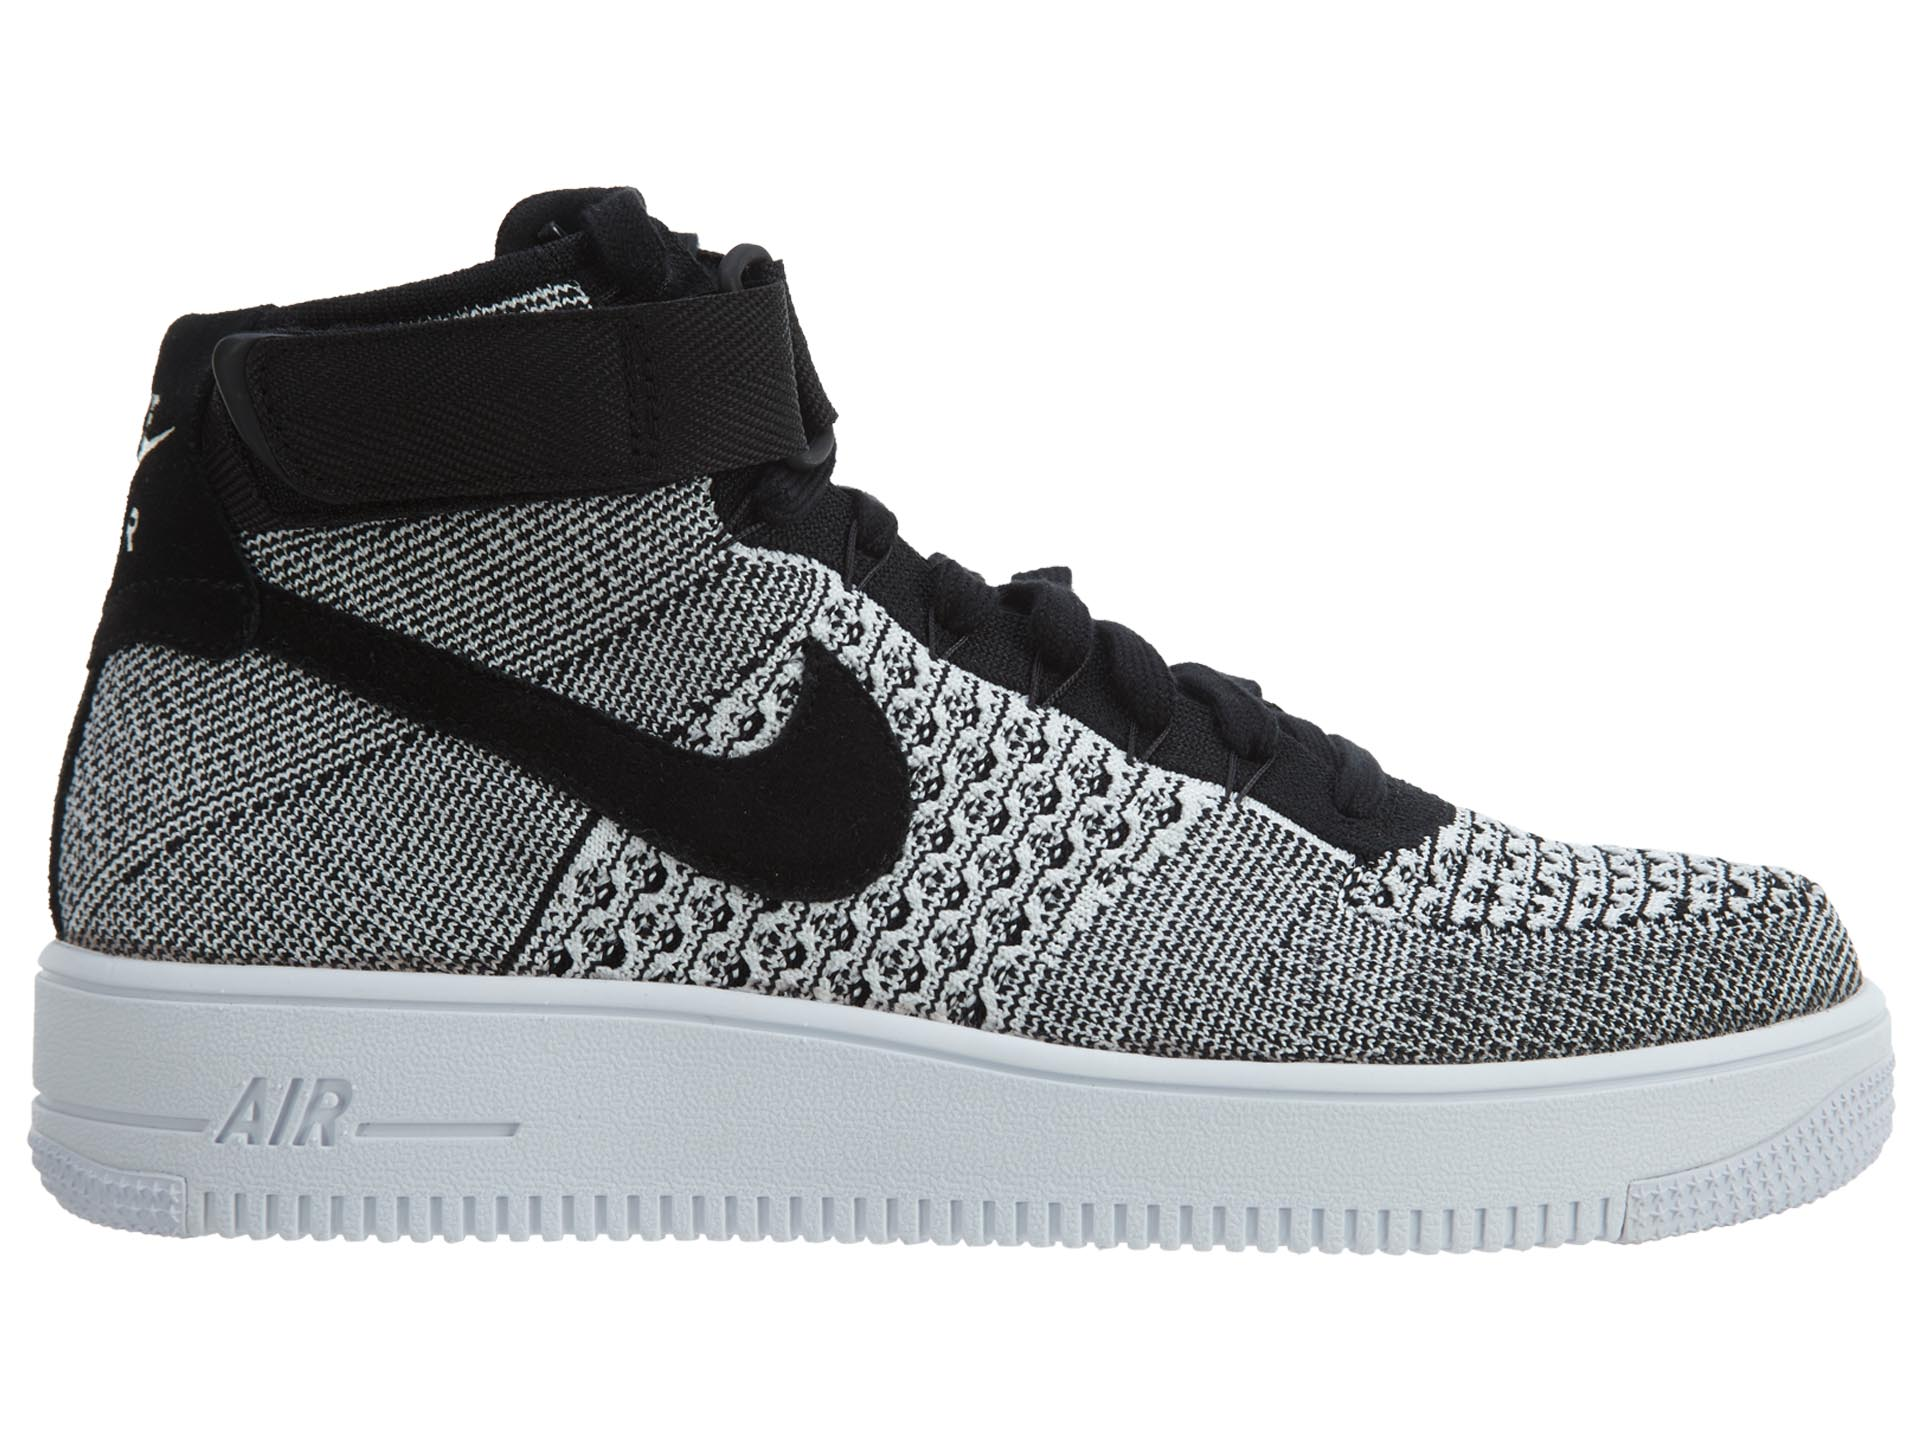 Nike Af1 Ultra Flyknit Mid Mens Style : 817420